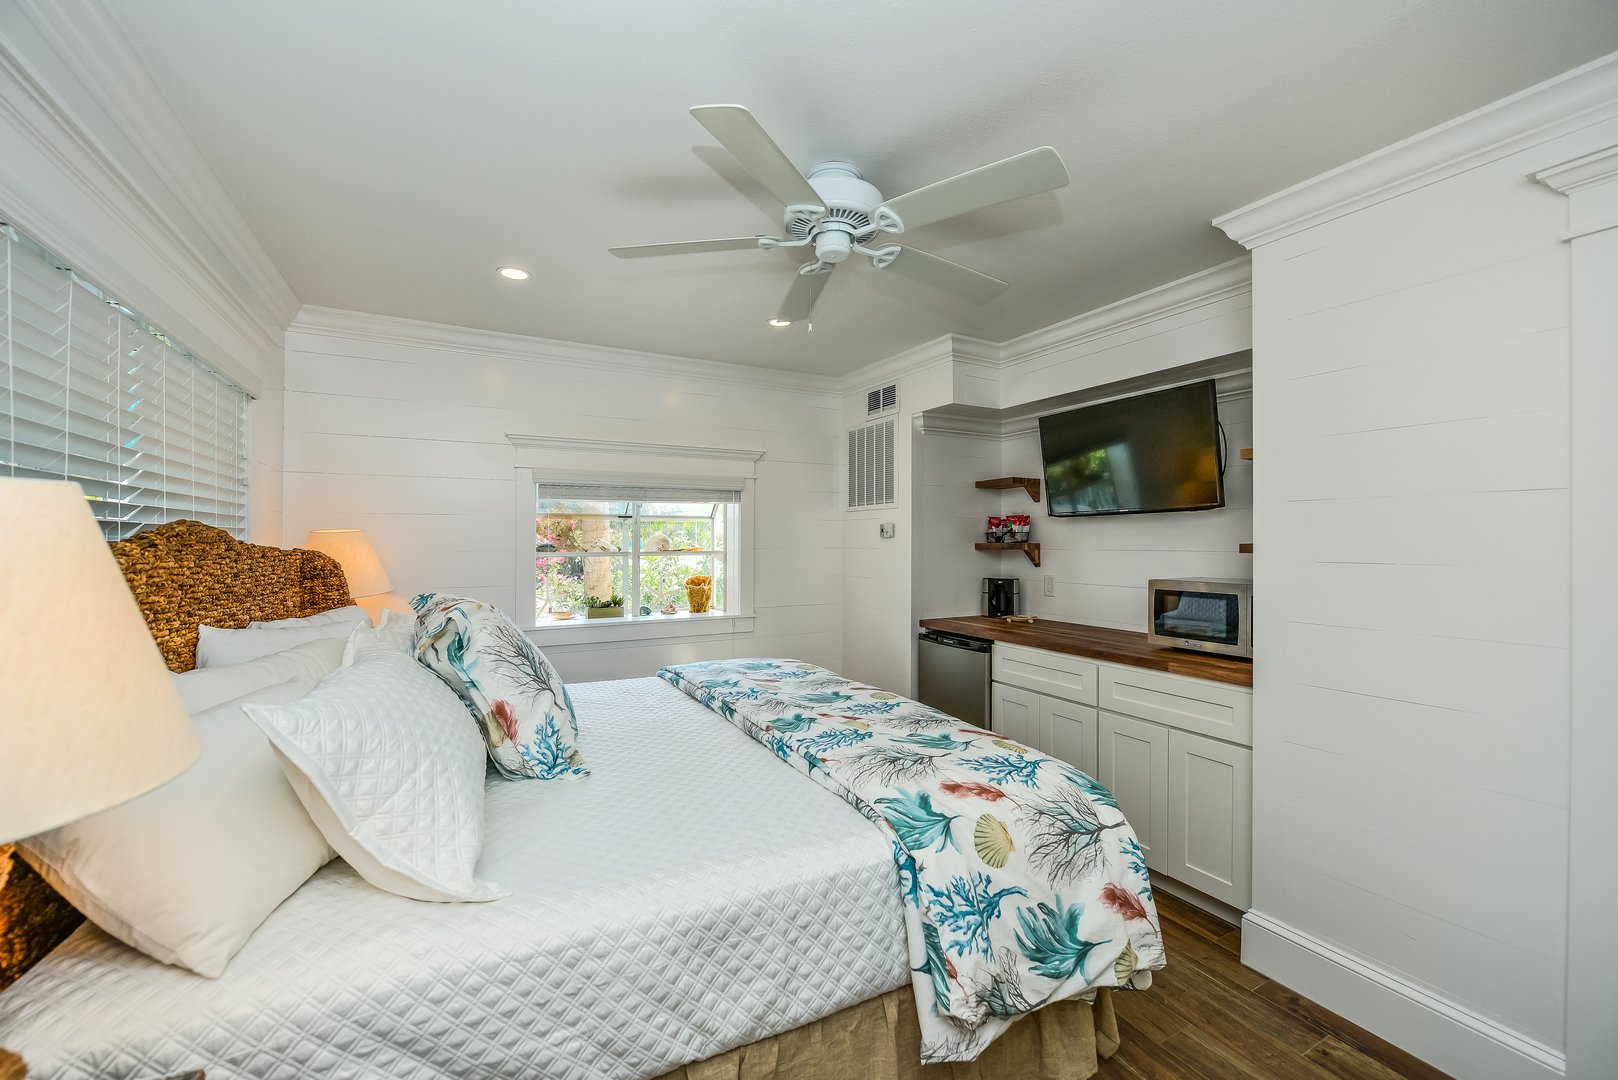 Completely Remodeled Room - Old Florida Feel